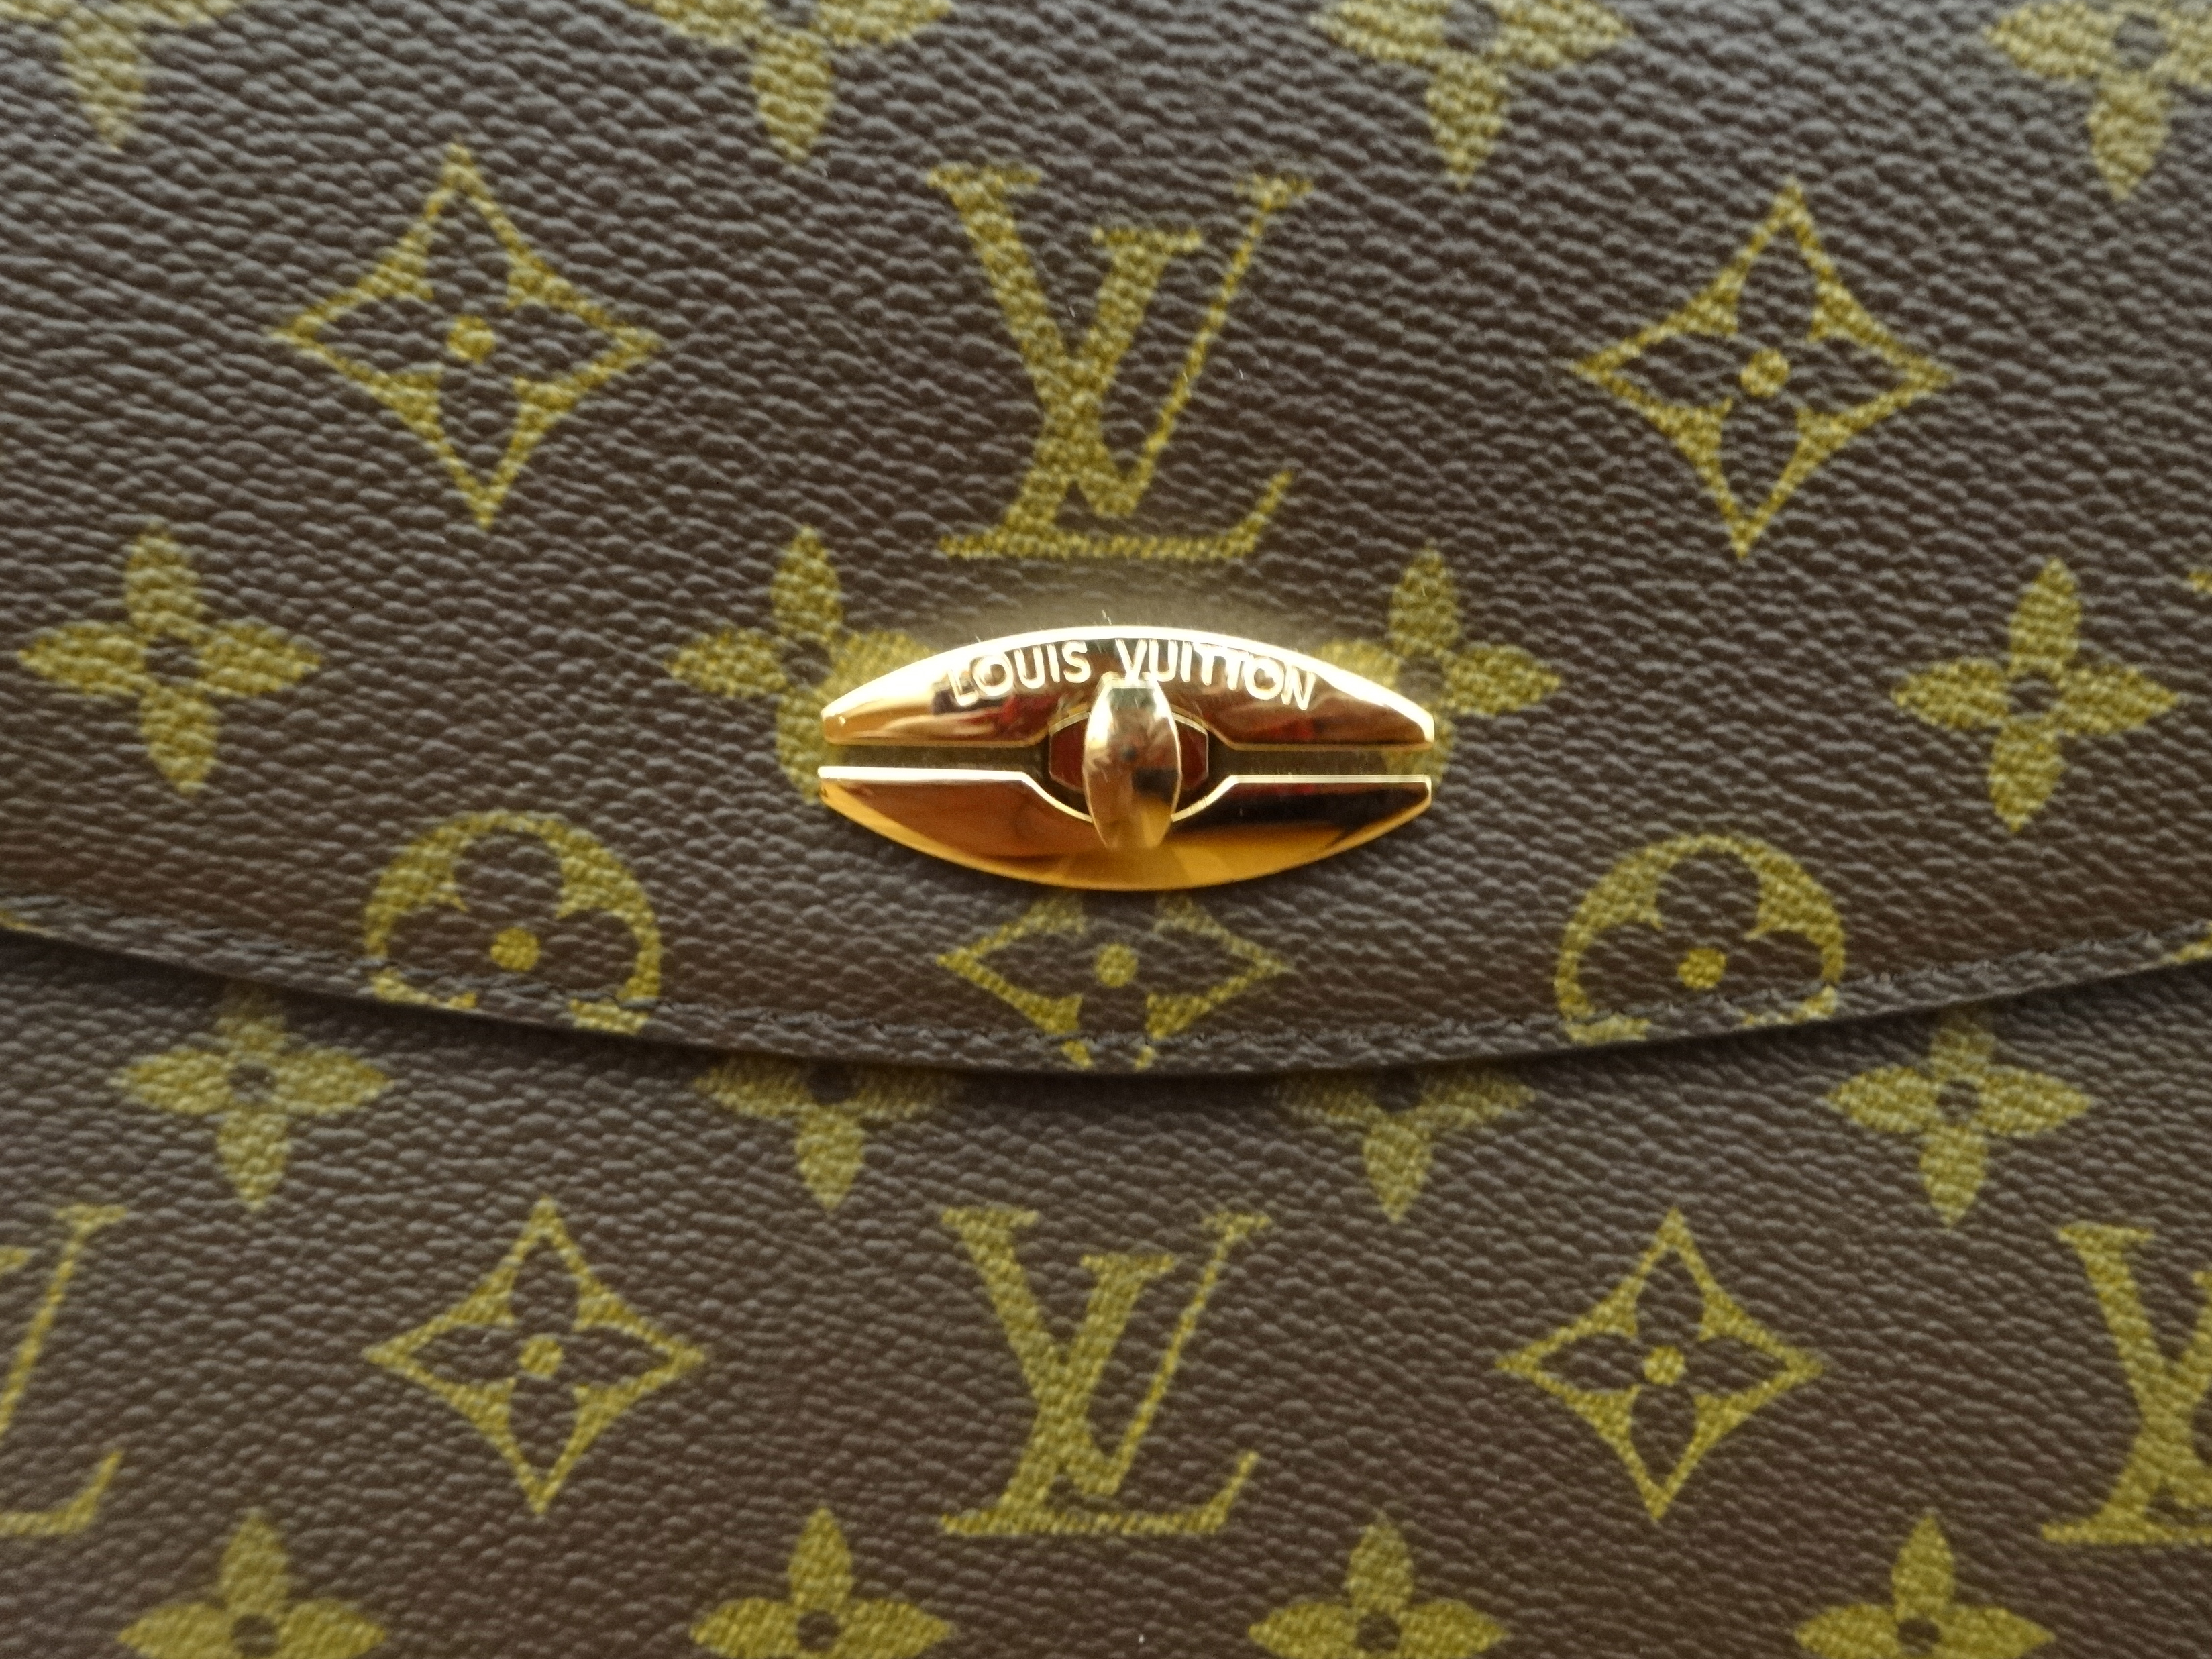 Louis Vuitton Monogram Malesherbes Detail